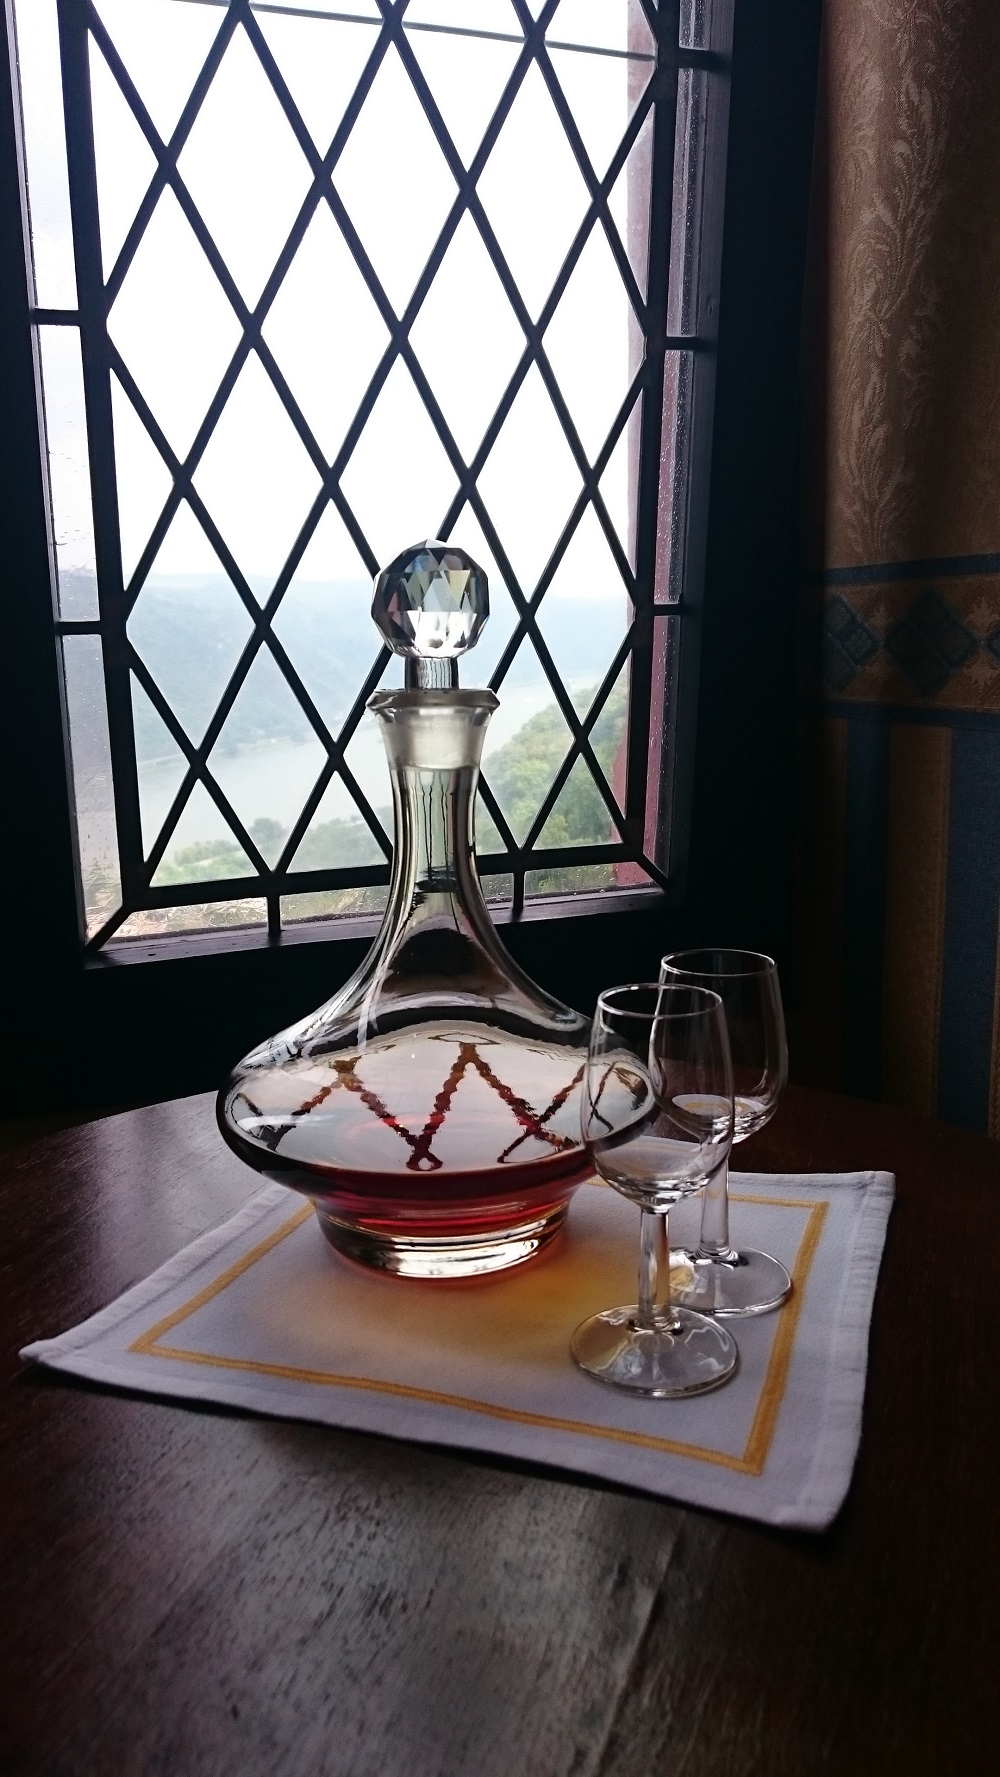 sherry and crystal decanter